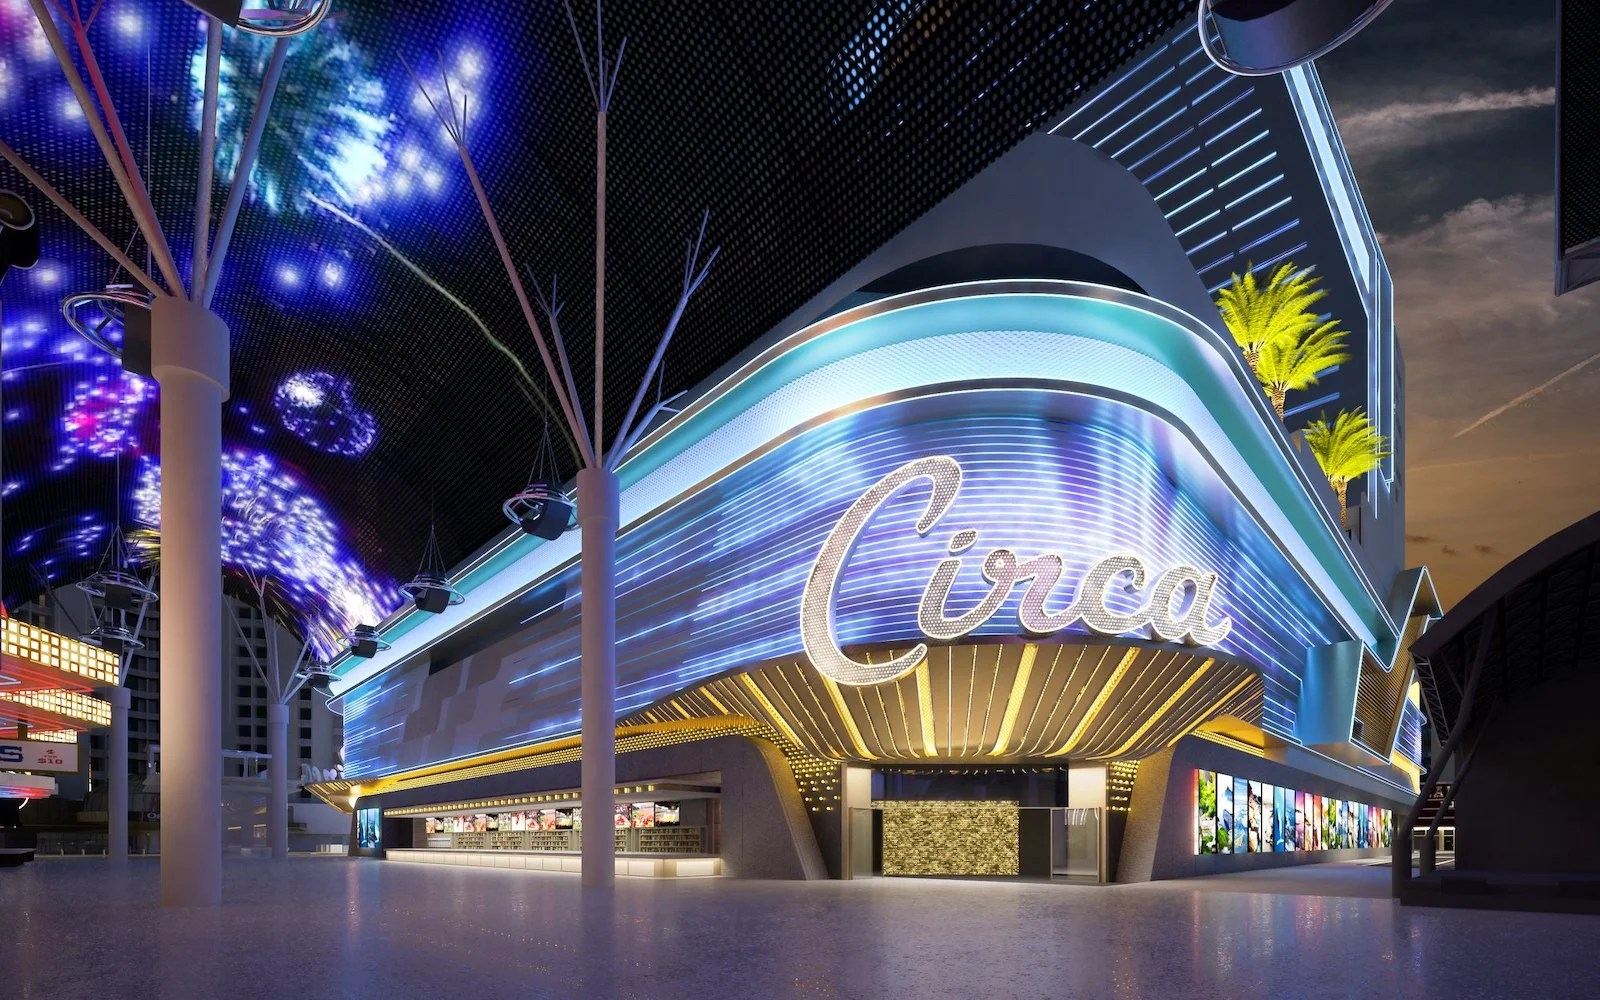 There's a new adults-only hotel opening in Las Vegas